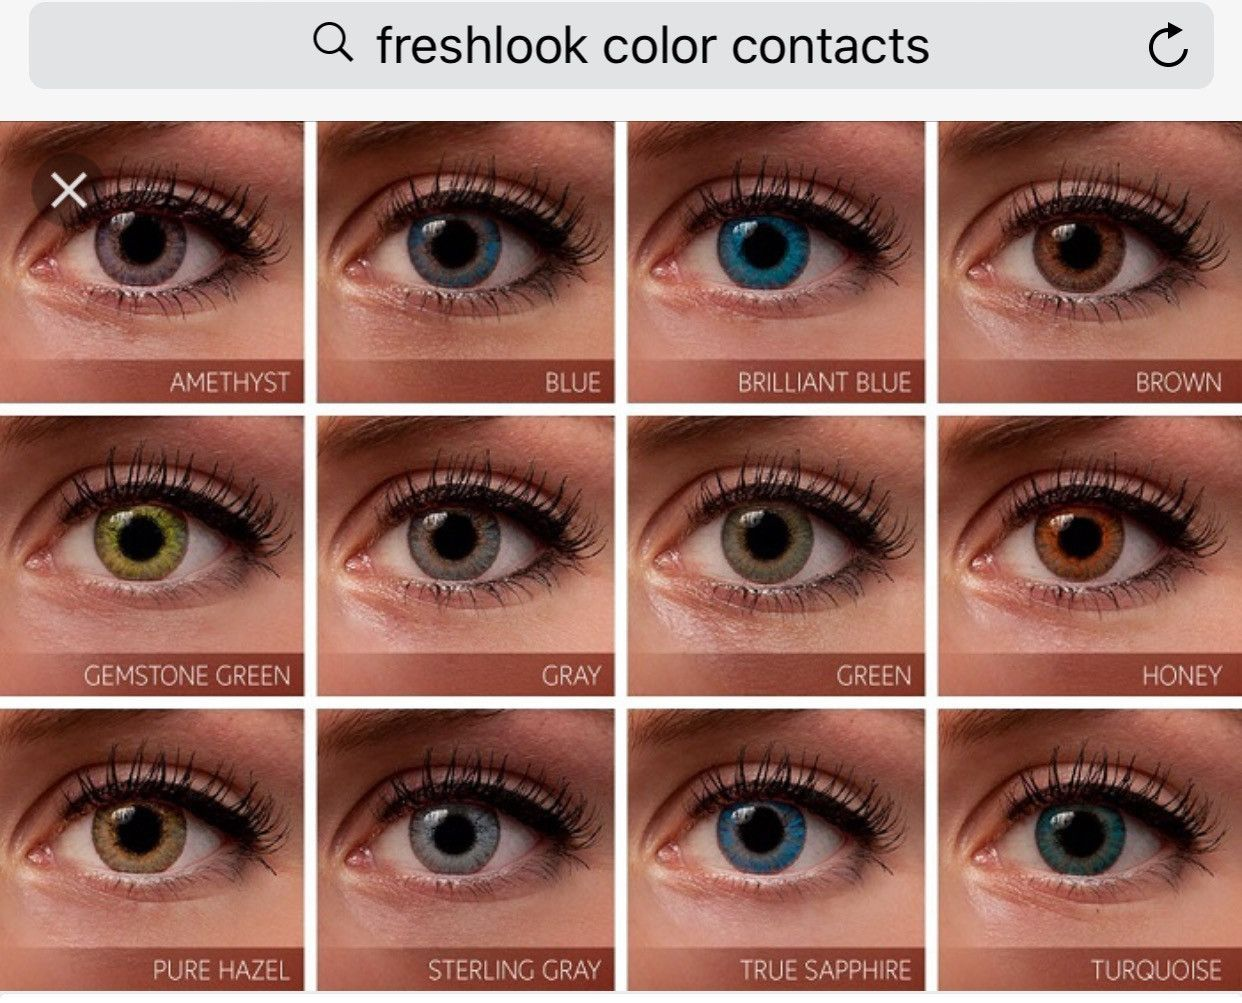 Non Prescription Color Contact Reusable Up To 3 Months With Proper Care Fast And Free S Contact Lenses Colored Colored Contacts Contact Lenses For Brown Eyes